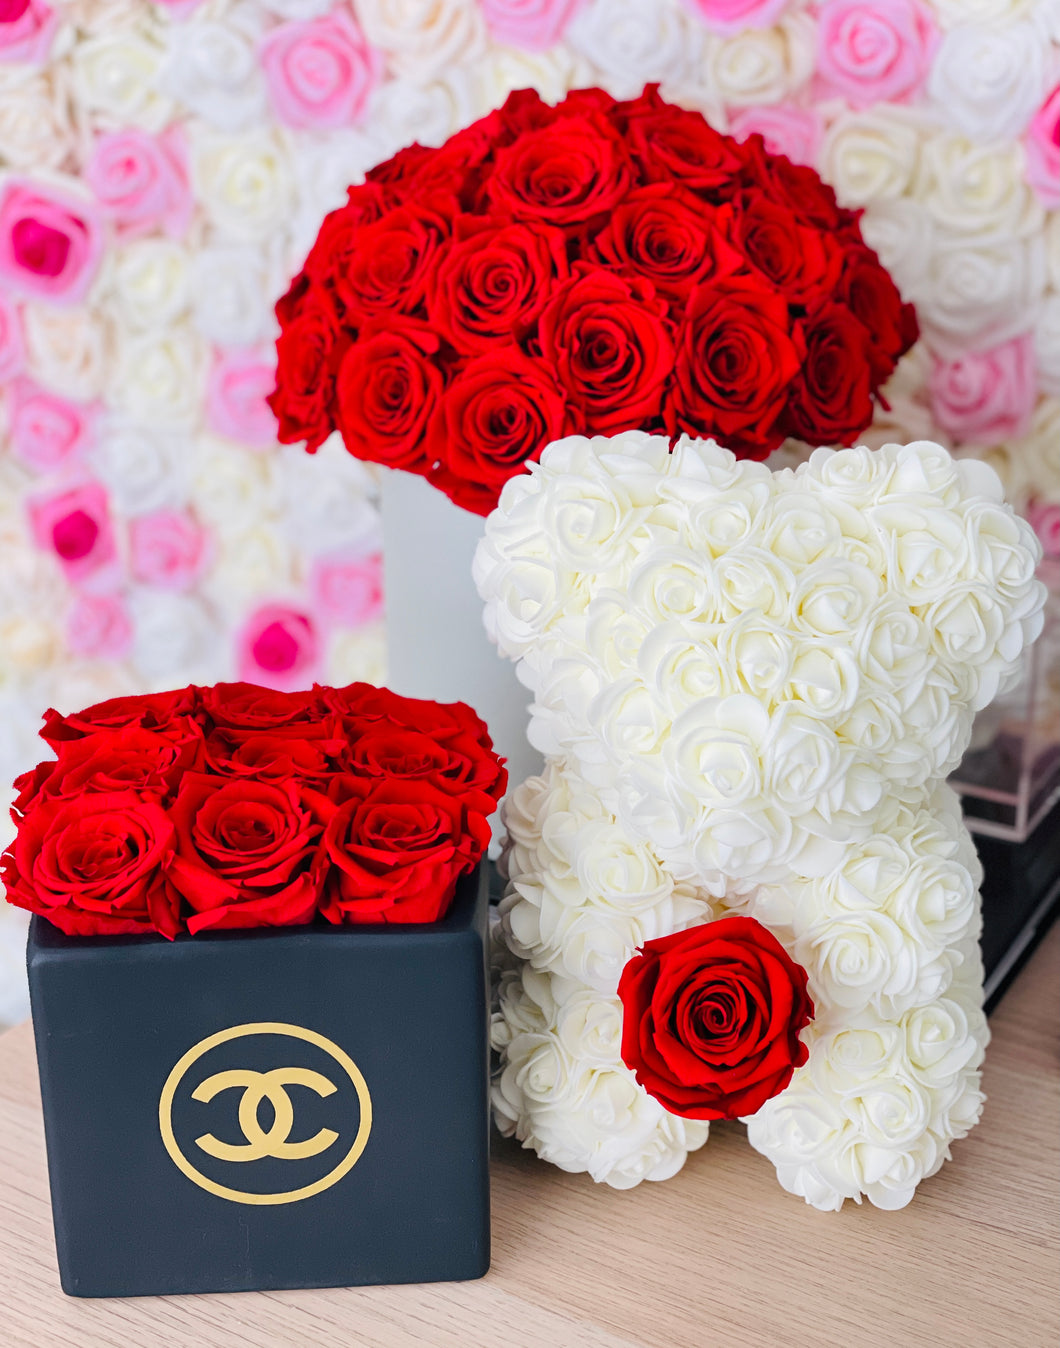 Ceramic Preserved Flower Vase & Rose Bear With Real Eternity Rose